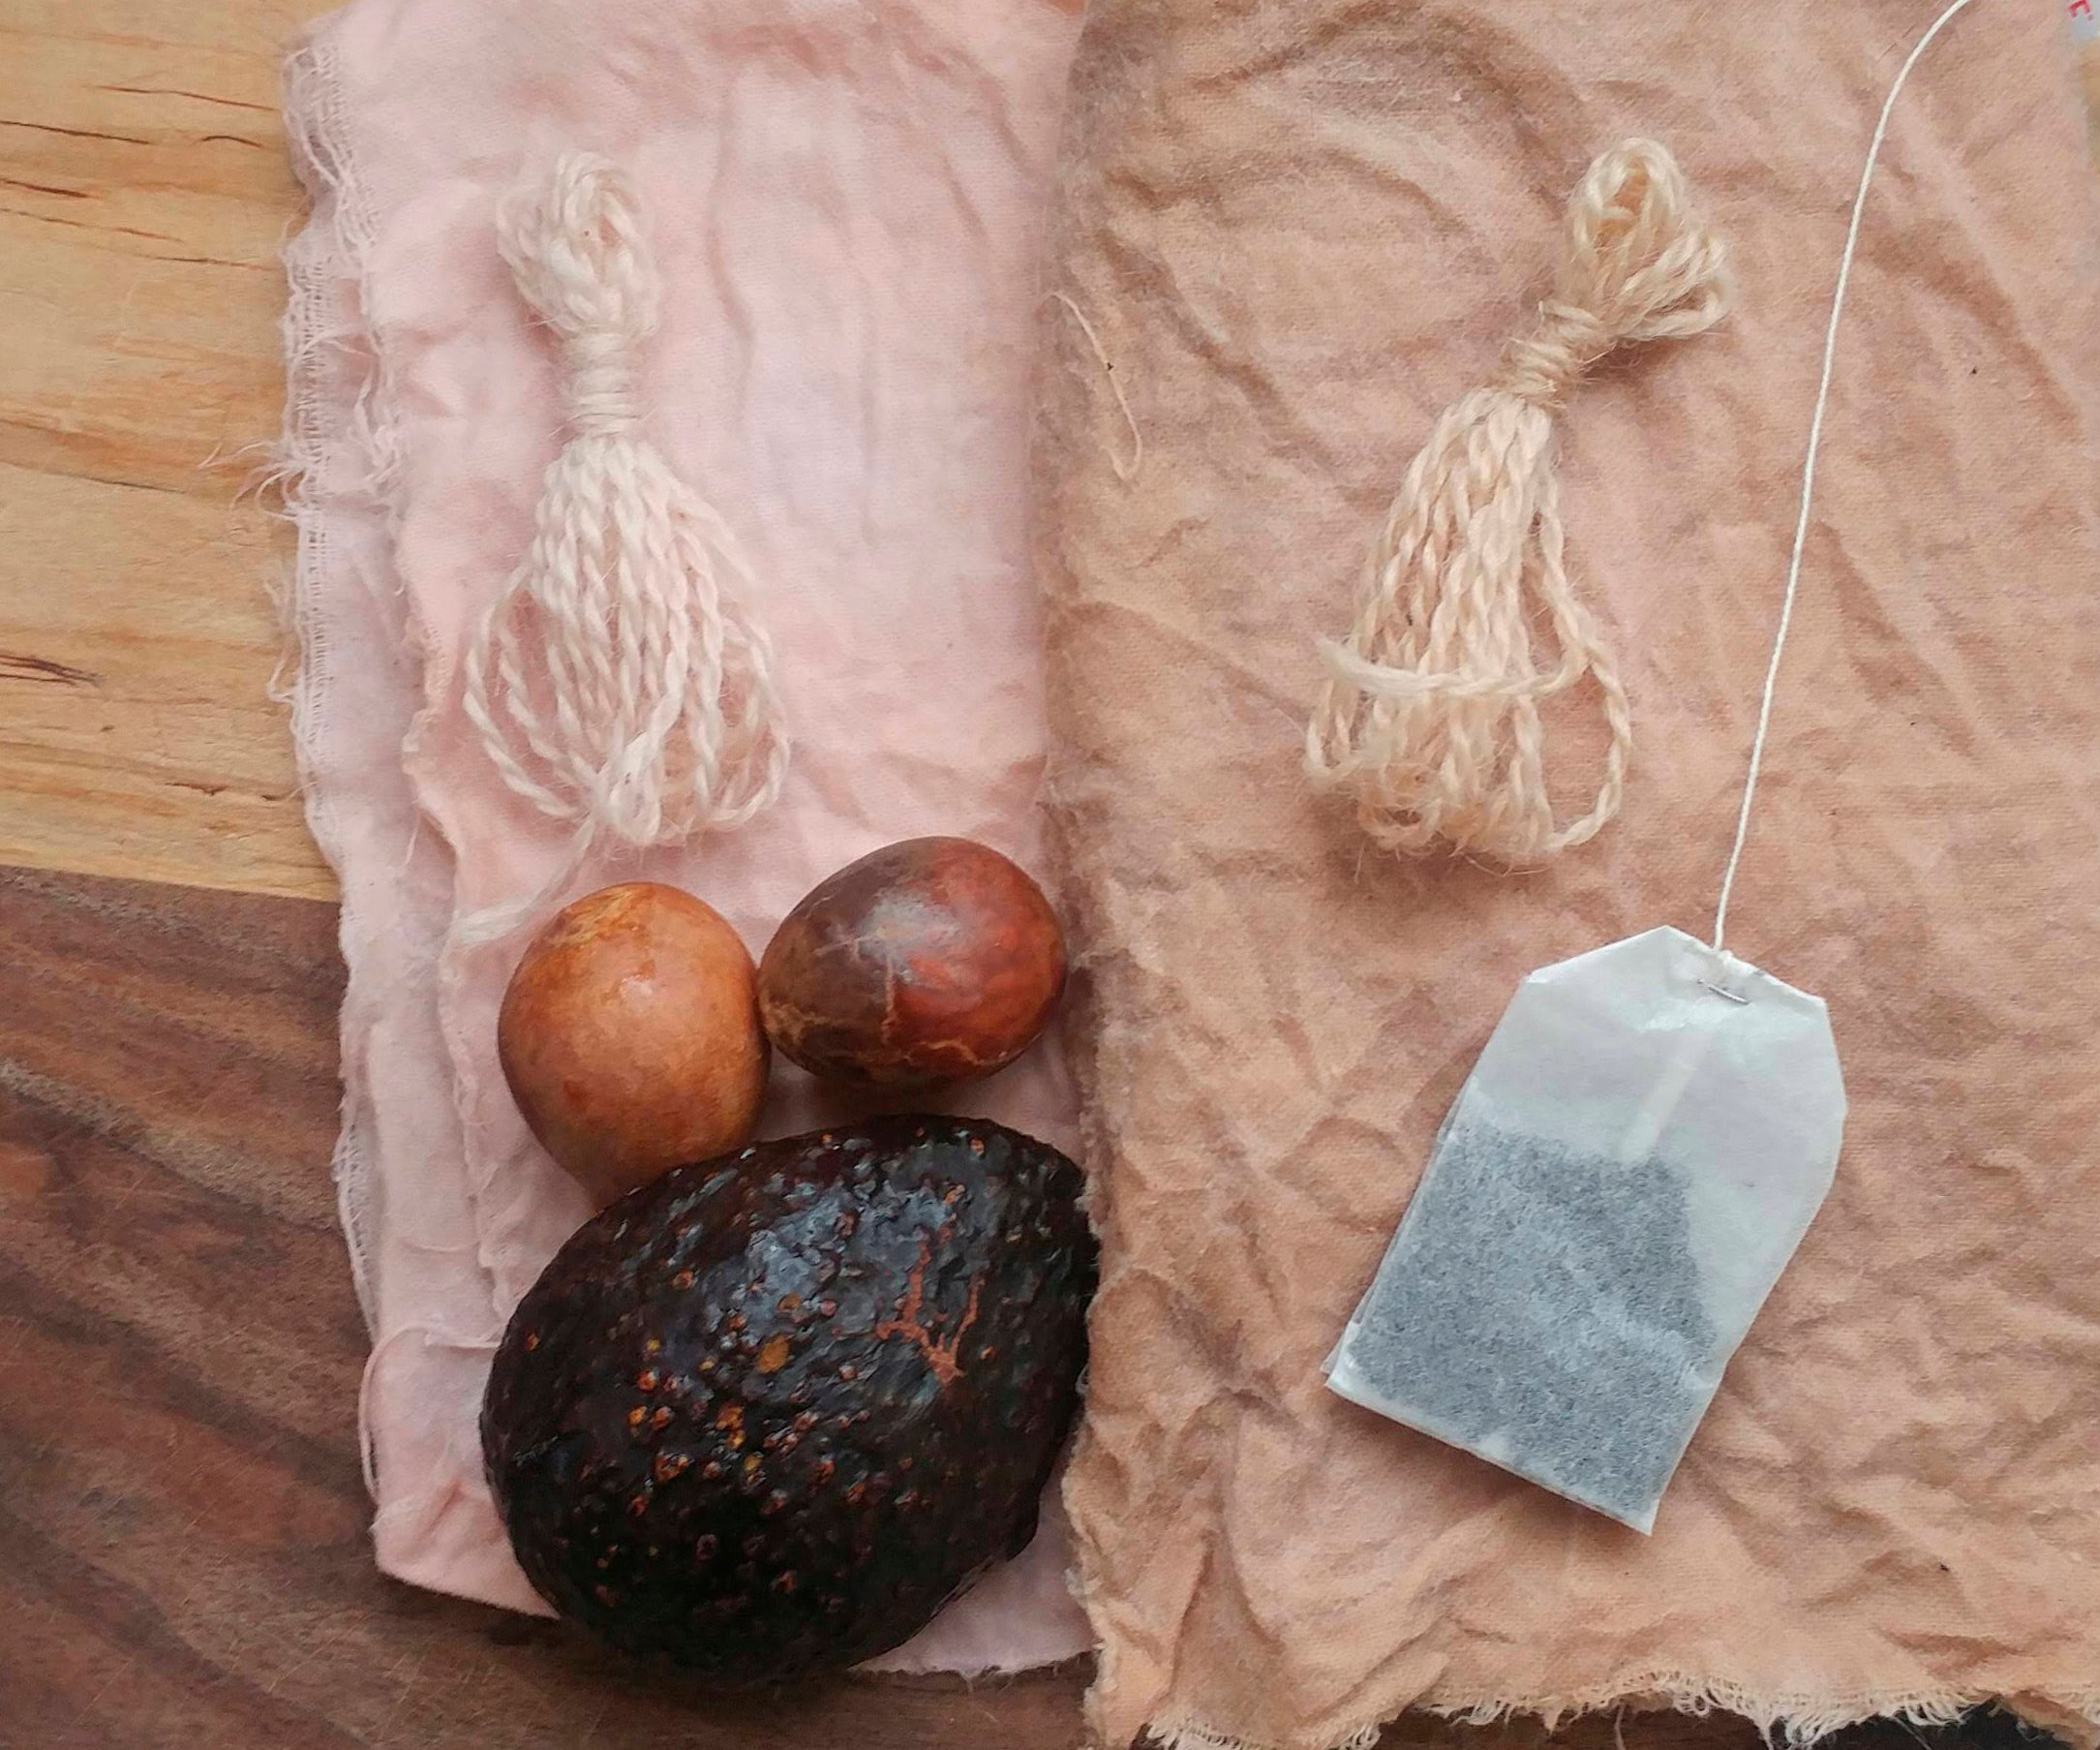 05/29 Natural Dye Workshop: Kitchen Dyeing with Adventure Textiles on Friday May 29 at 6pm